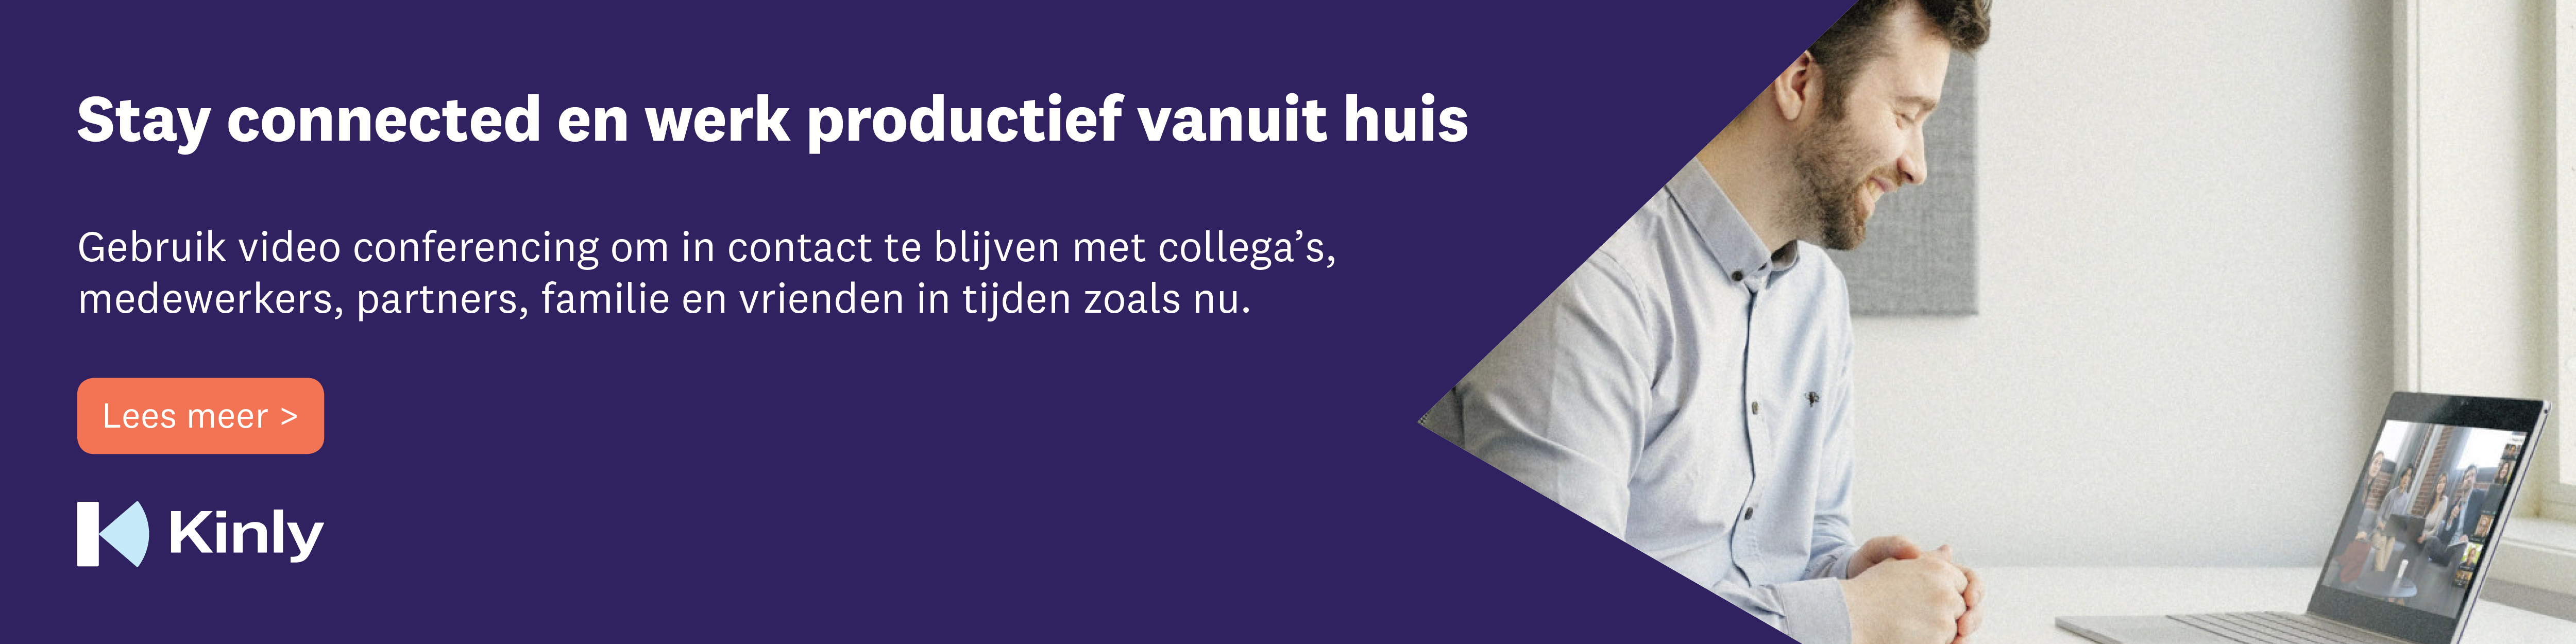 Stay connected banner NL